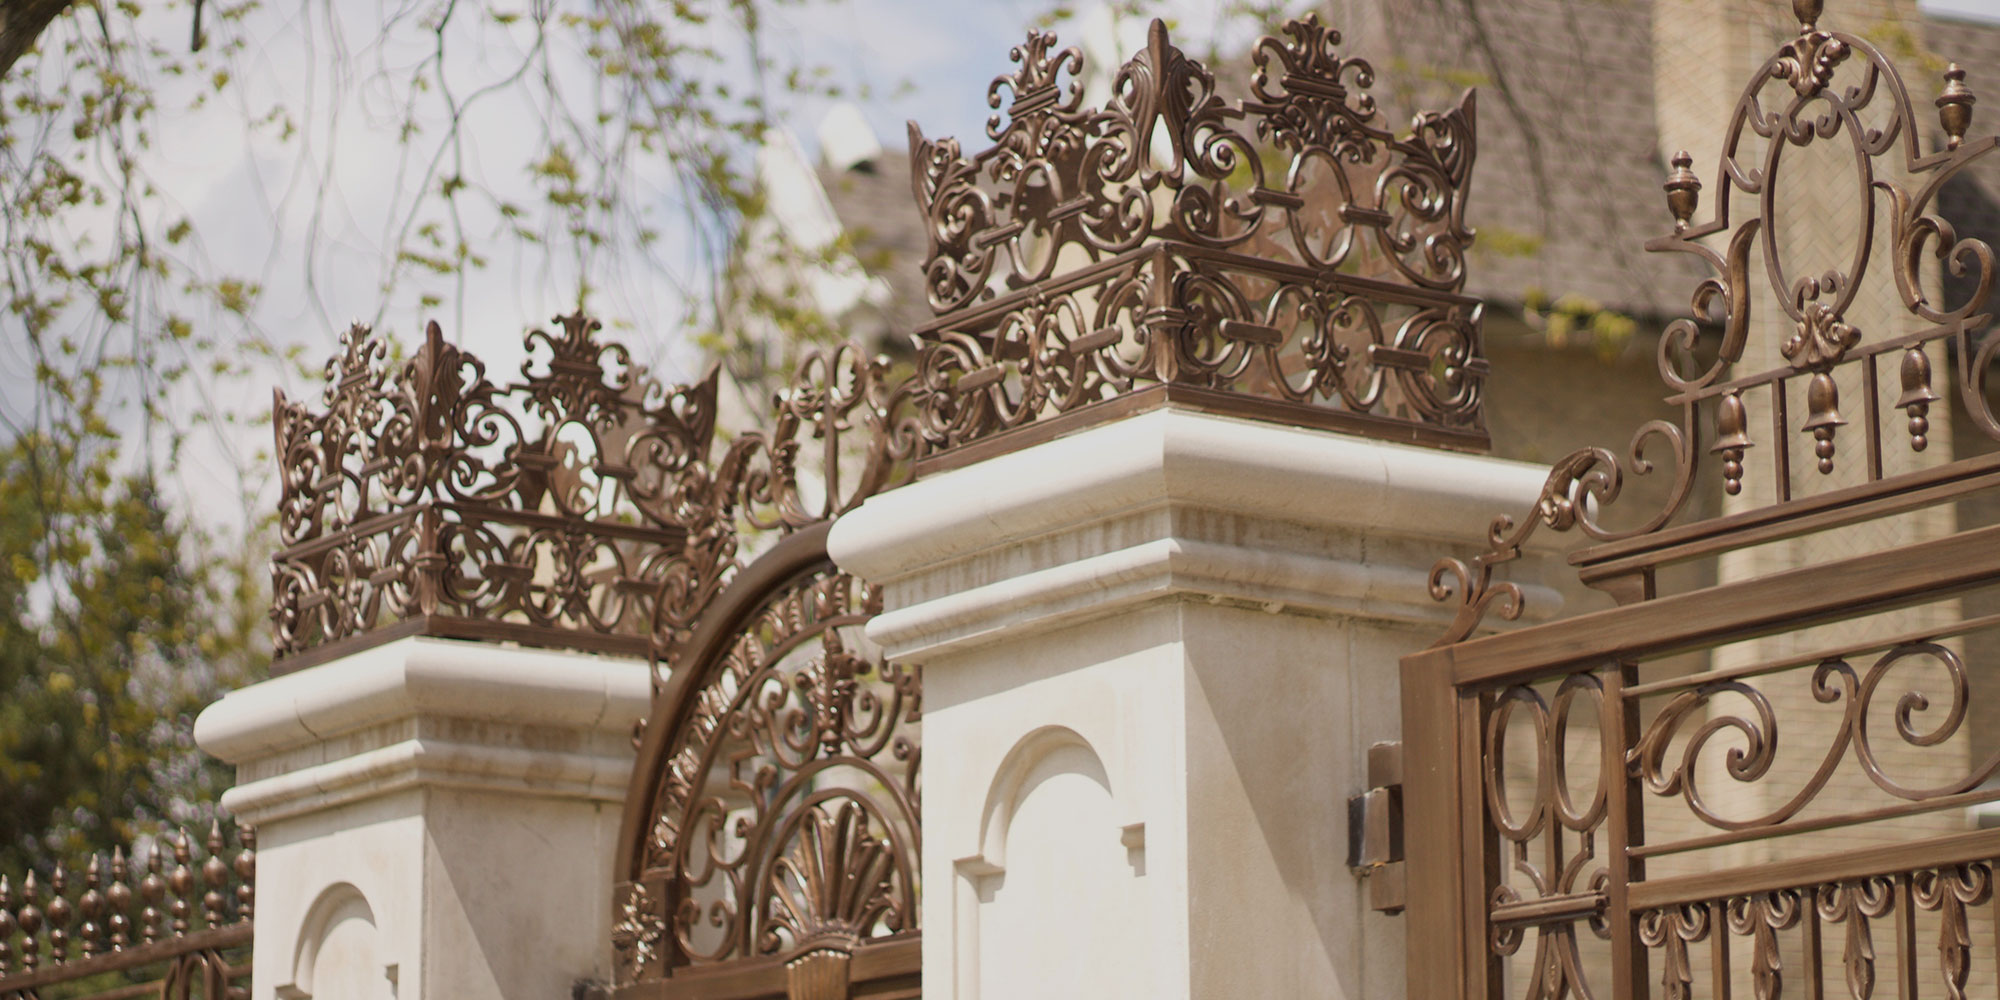 The Process Of Selecting The Right Decorative Gate For Your Estate